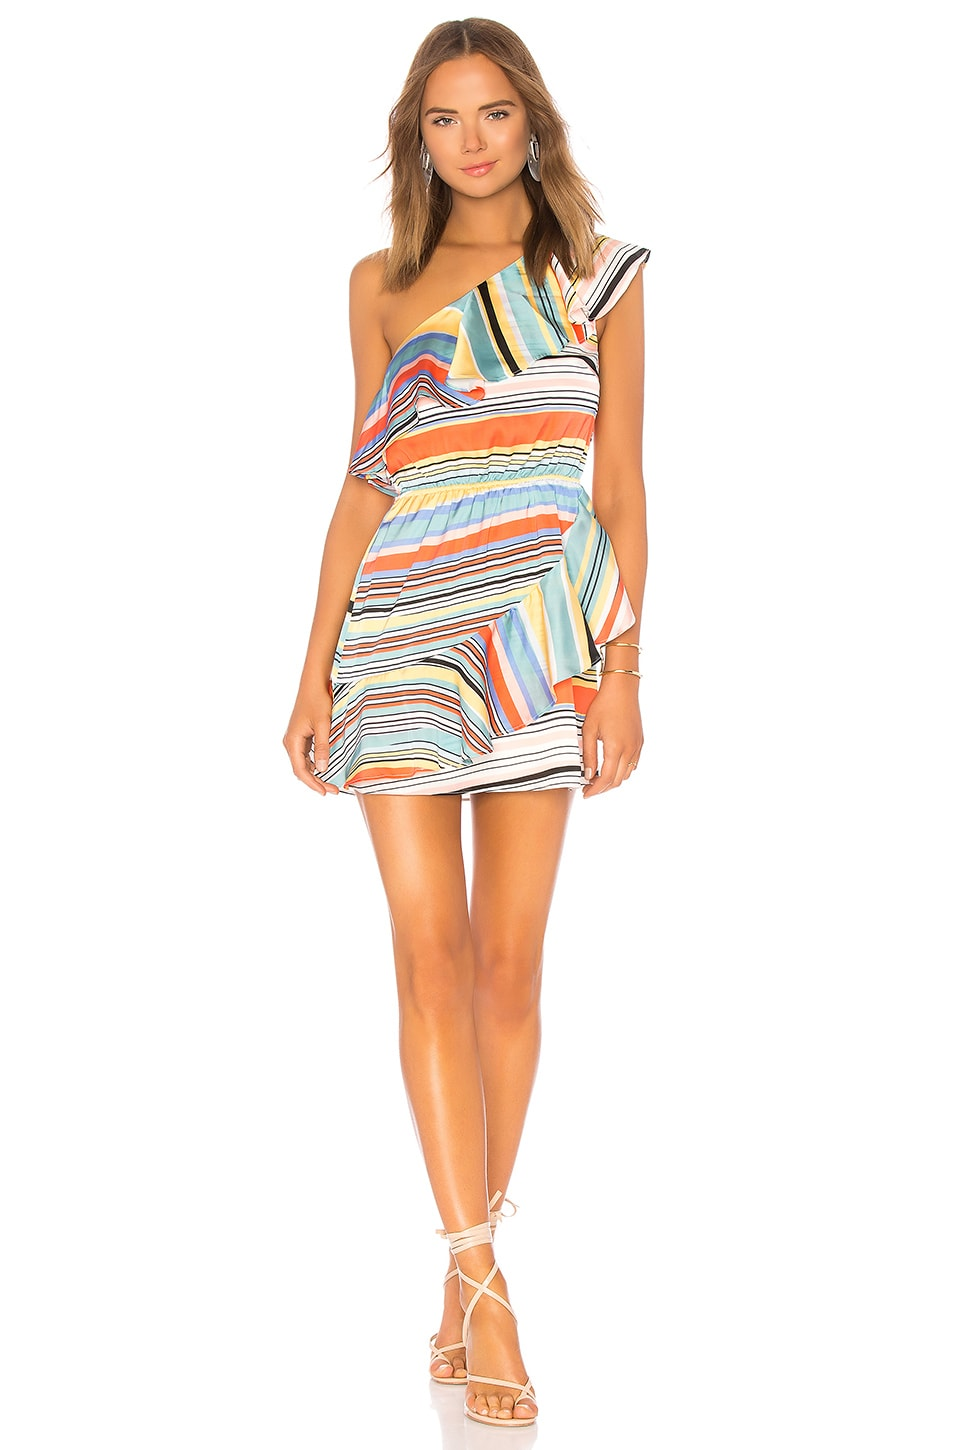 Lovers + Friends Pippa Dress in Aruba Stripe